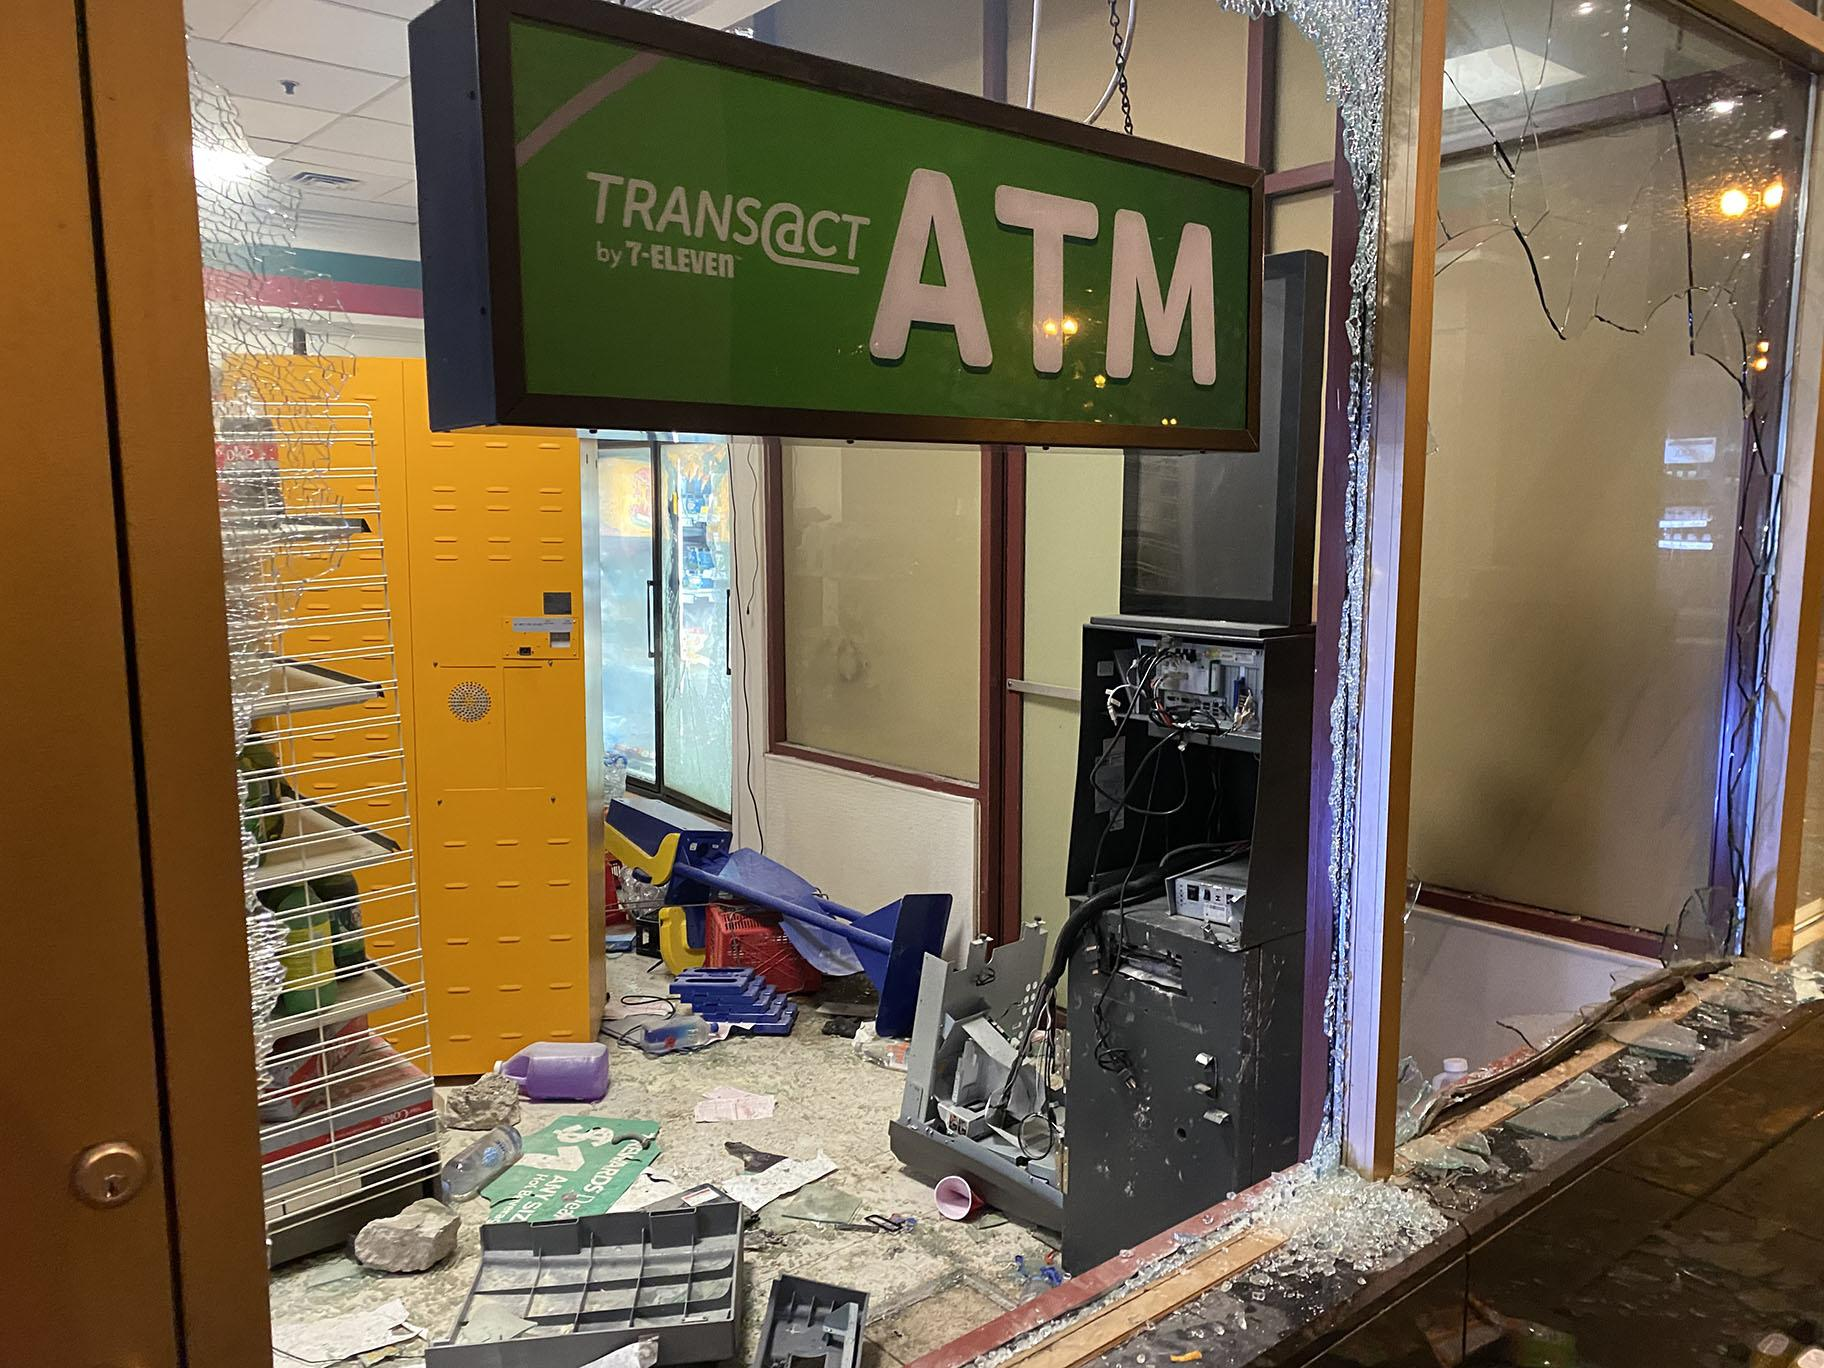 An ATM in the Loop is destroyed and windows are smashed on Saturday, May 30, 2020. (Hugo Balta / WTTW News)